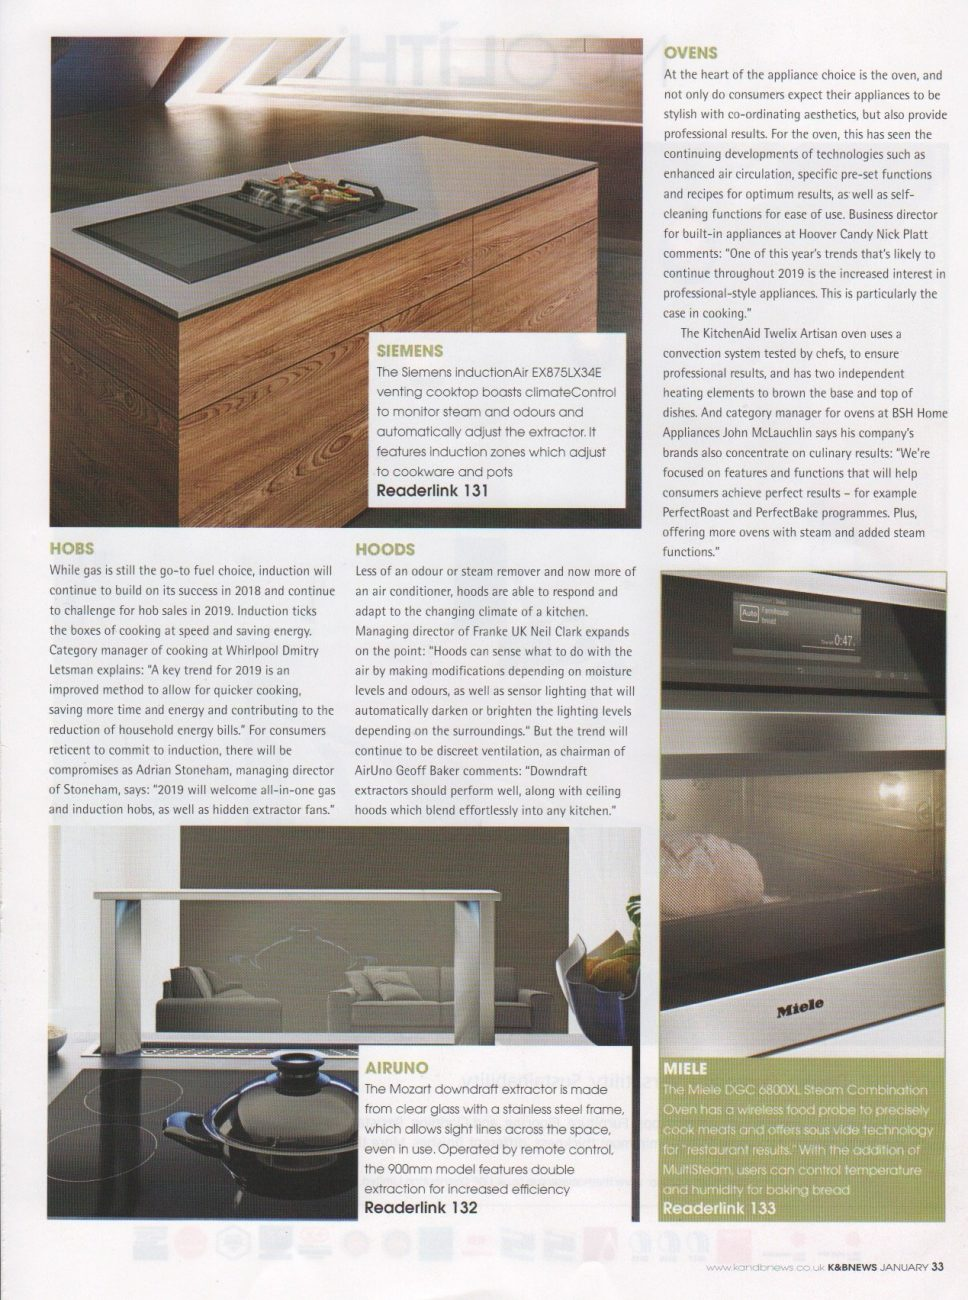 Part 3 of a kitchen trends feature in Kitchens and Bathrooms News magazine